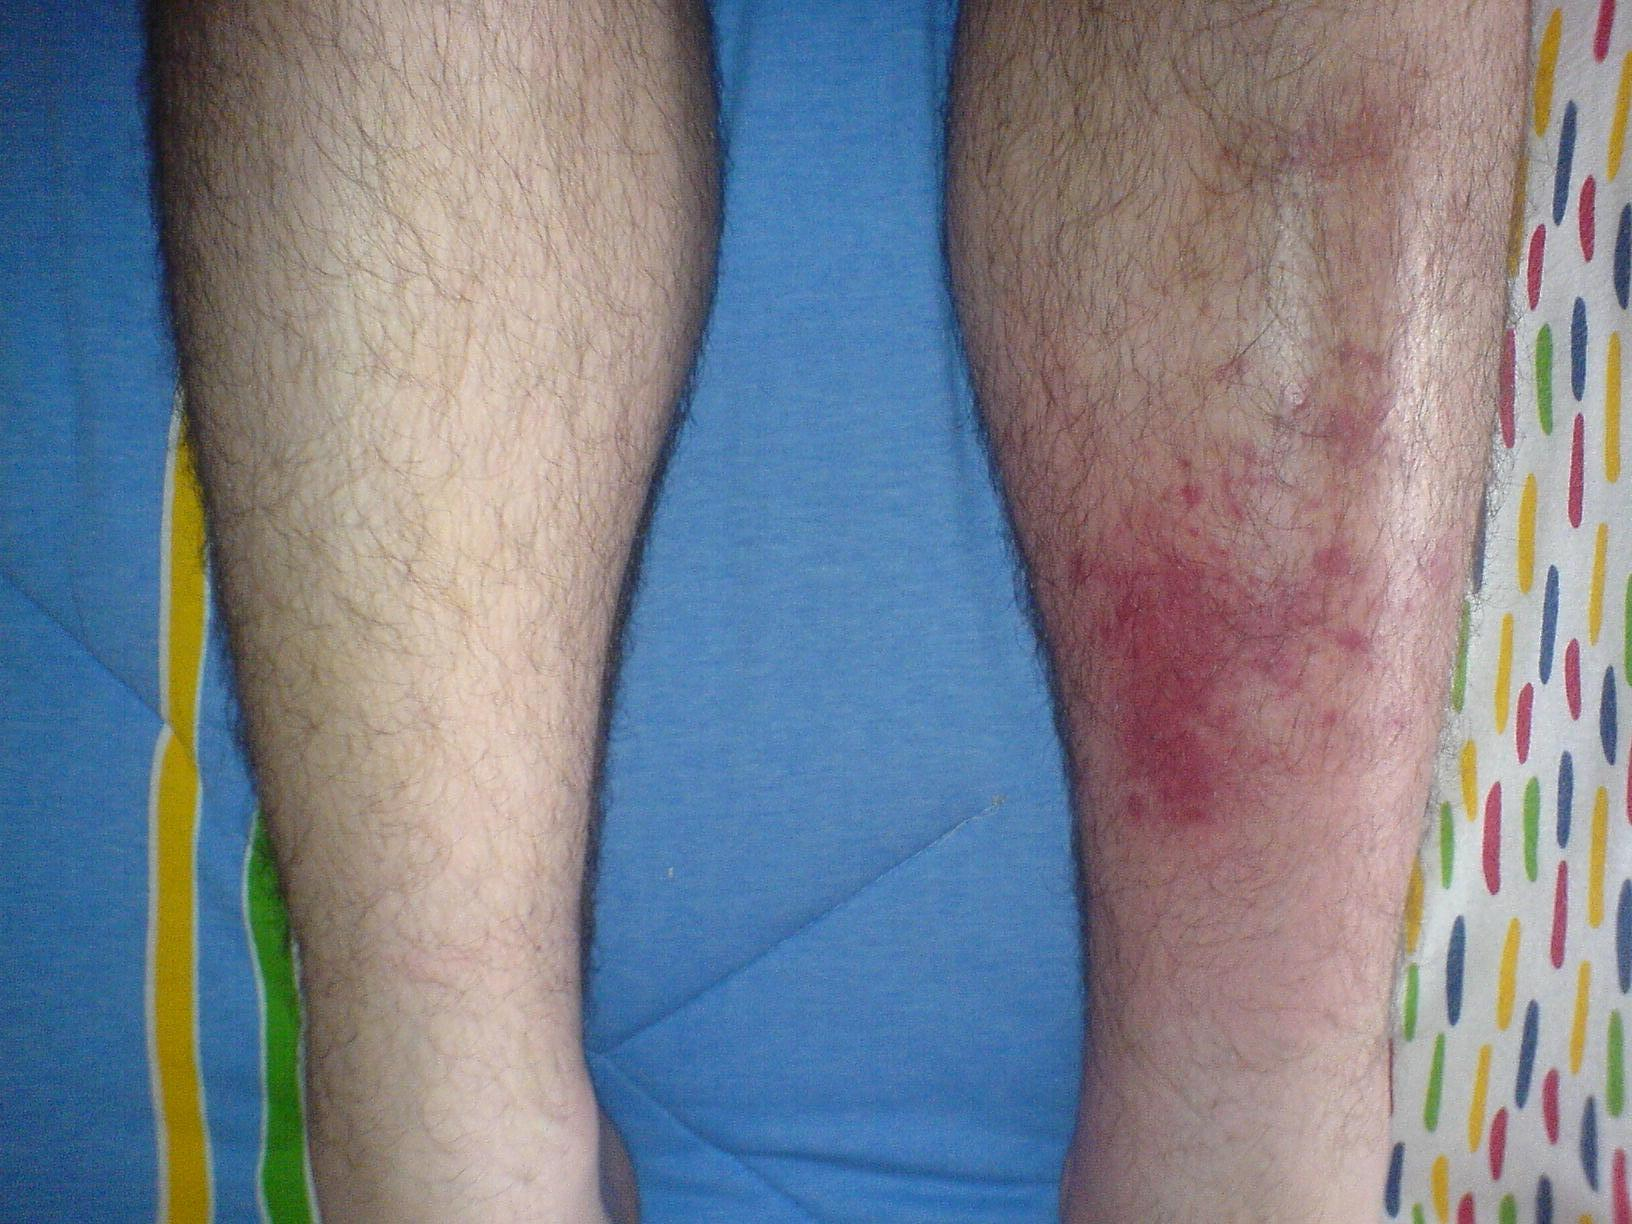 Why are skin diseases so common in wrestling as opposed to other ...